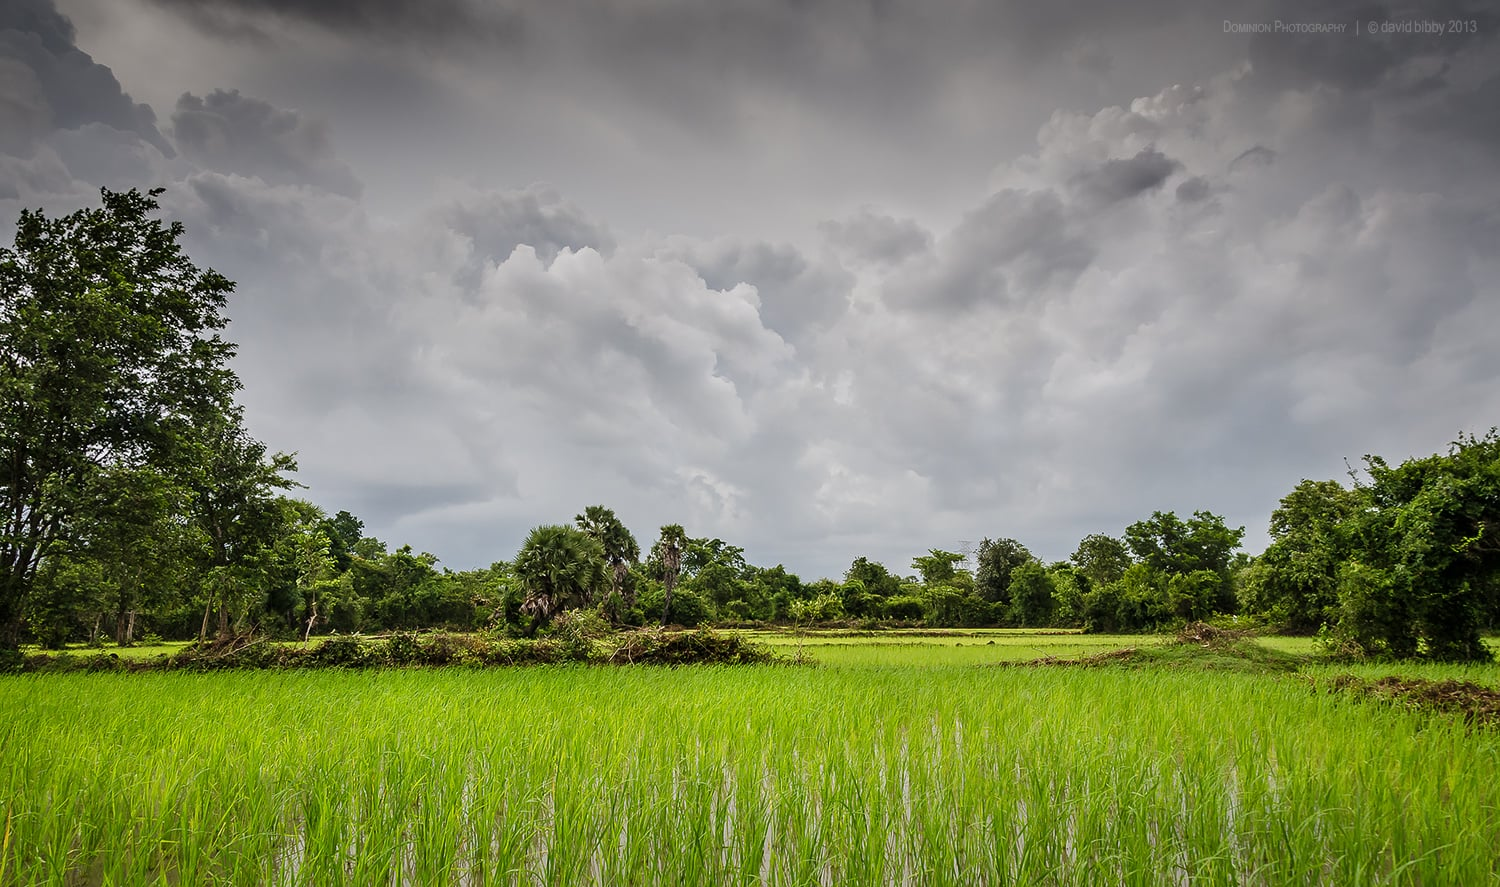 Wet season  - Rice paddies and developing rain. Kampong Cham Province, Cambodia.